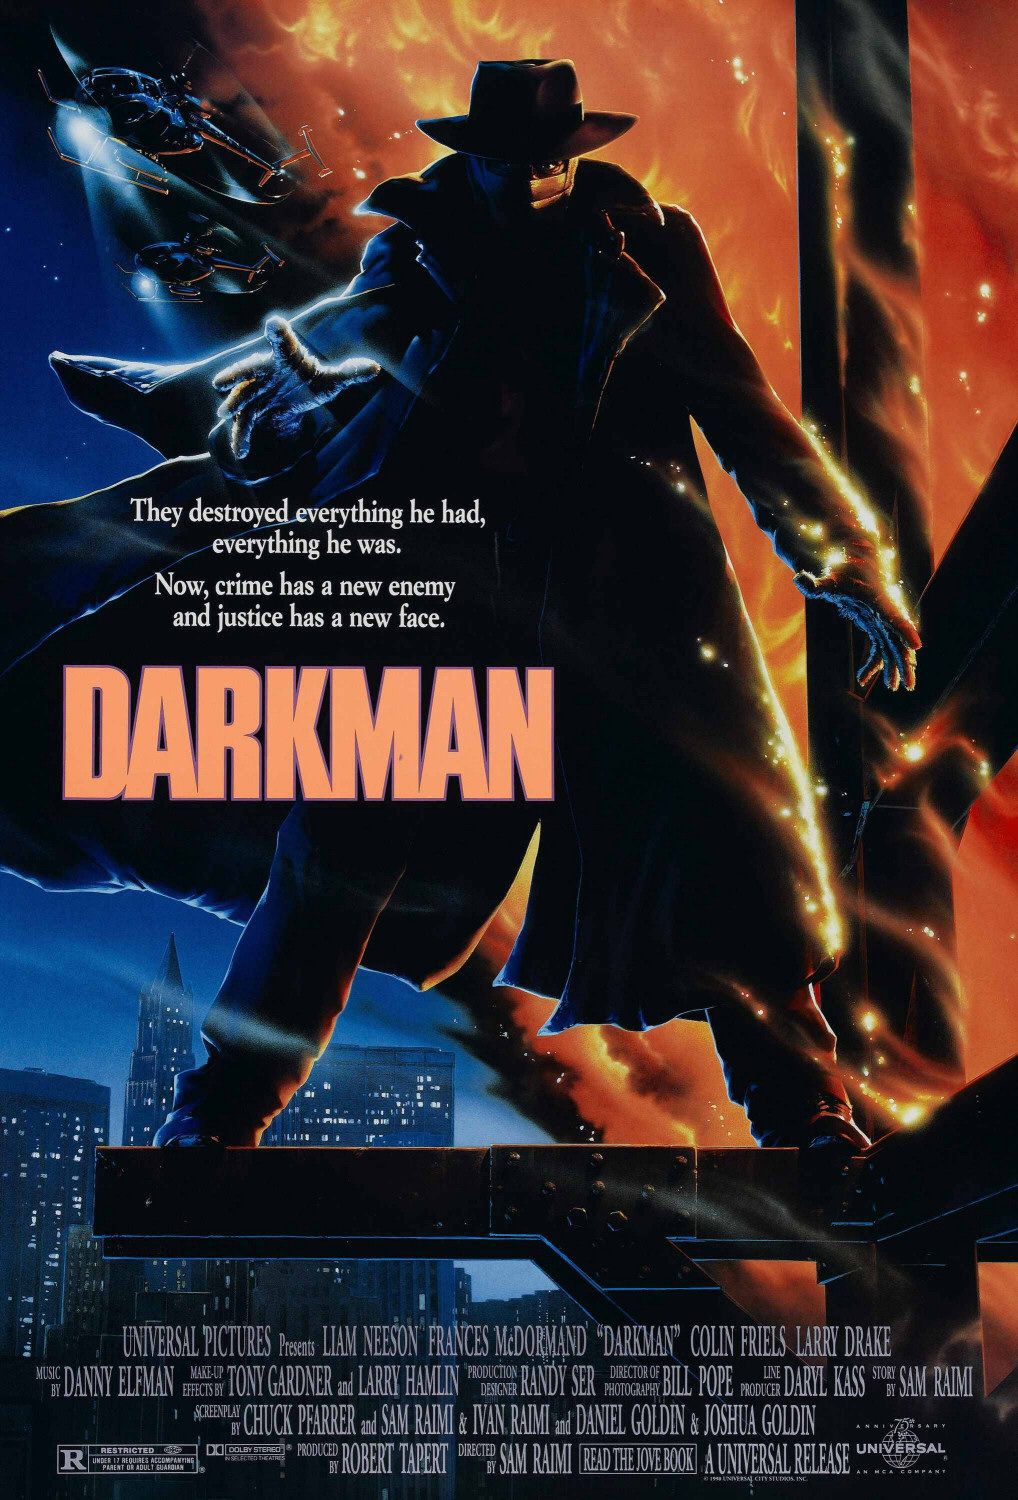 File:Darkman film poster.jpg